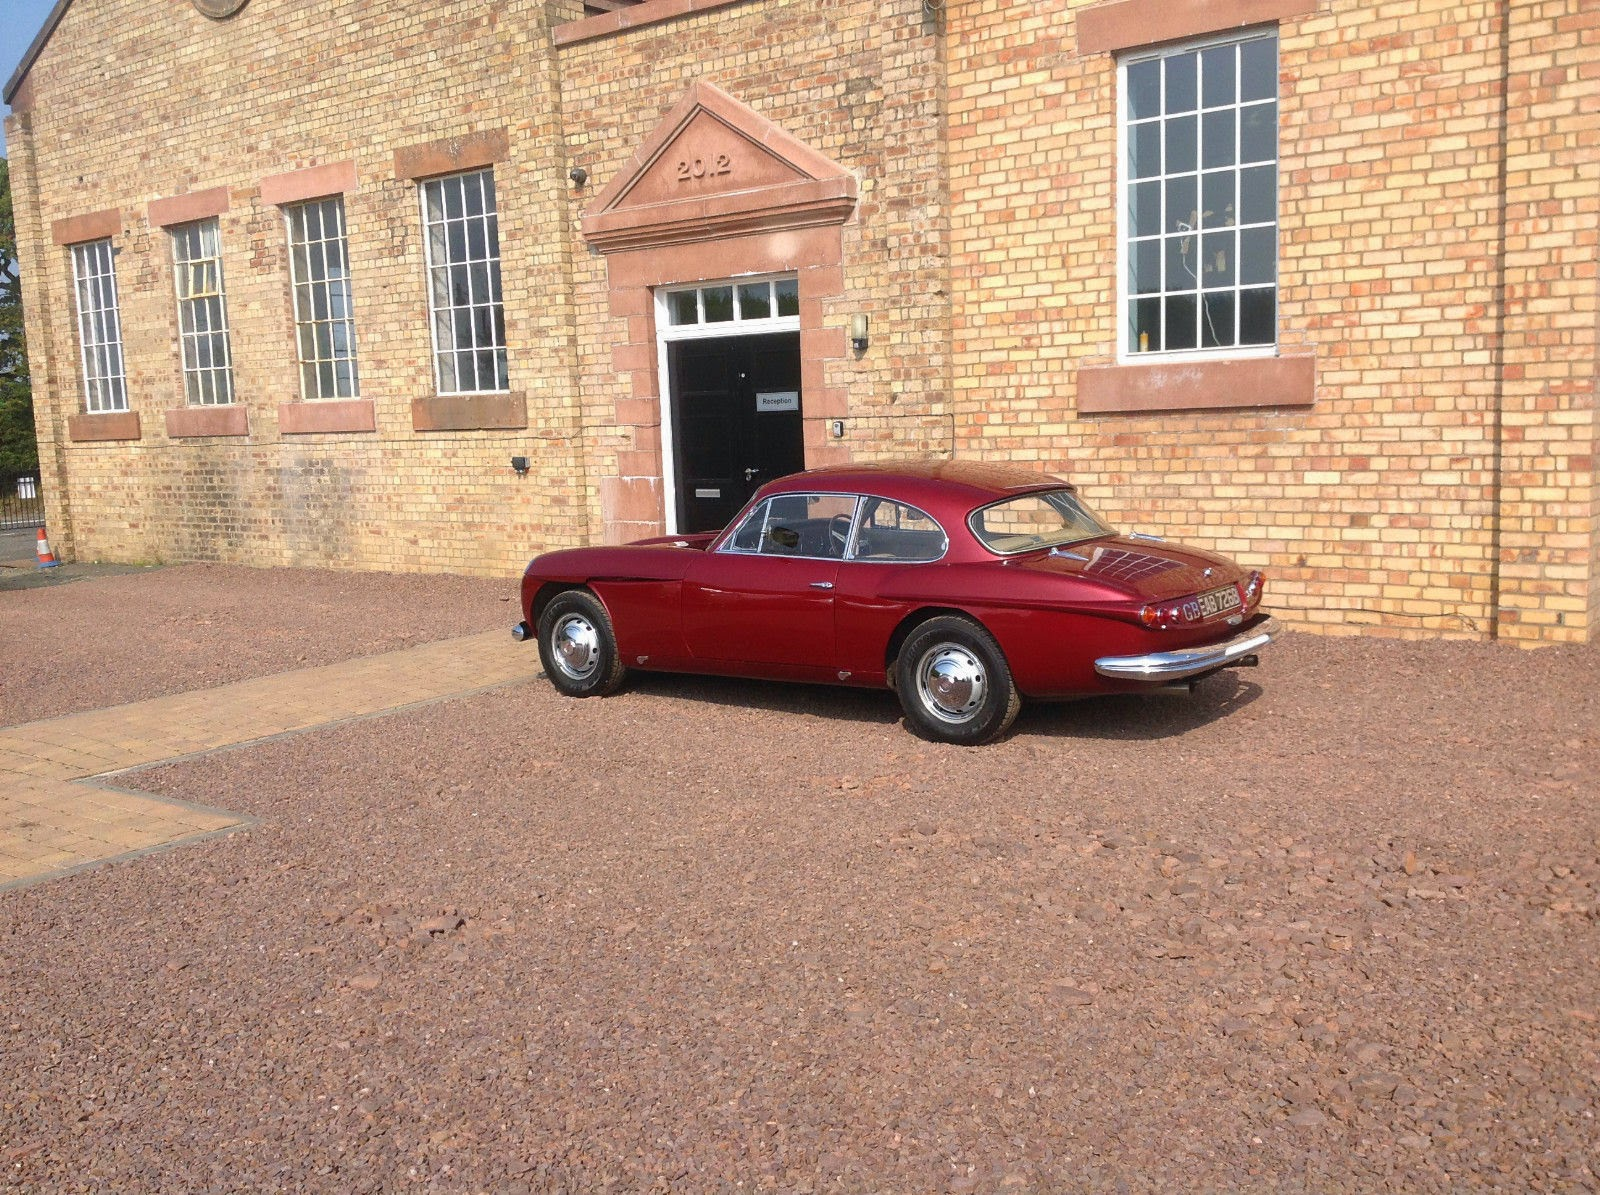 1964 jensen cv8 mk ii ultimate british 60s supercar